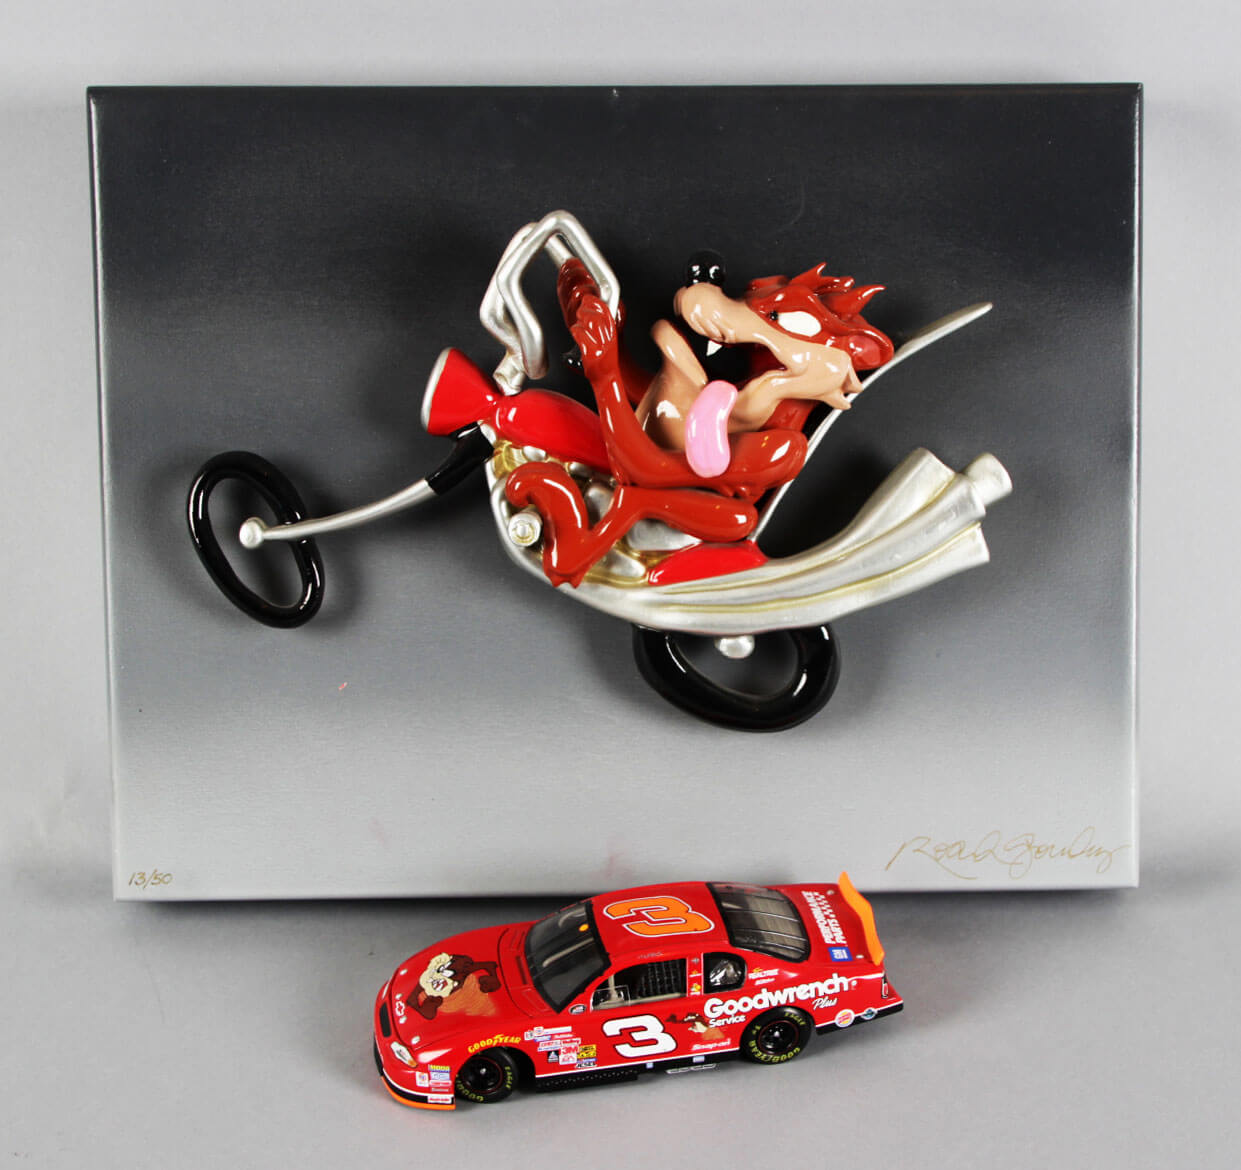 """Tasmanian Devil Signed """"Born To Ride"""" Artwork Pop-Out LE 15/50 with NASCAR Taz Goodwrench Race Car"""